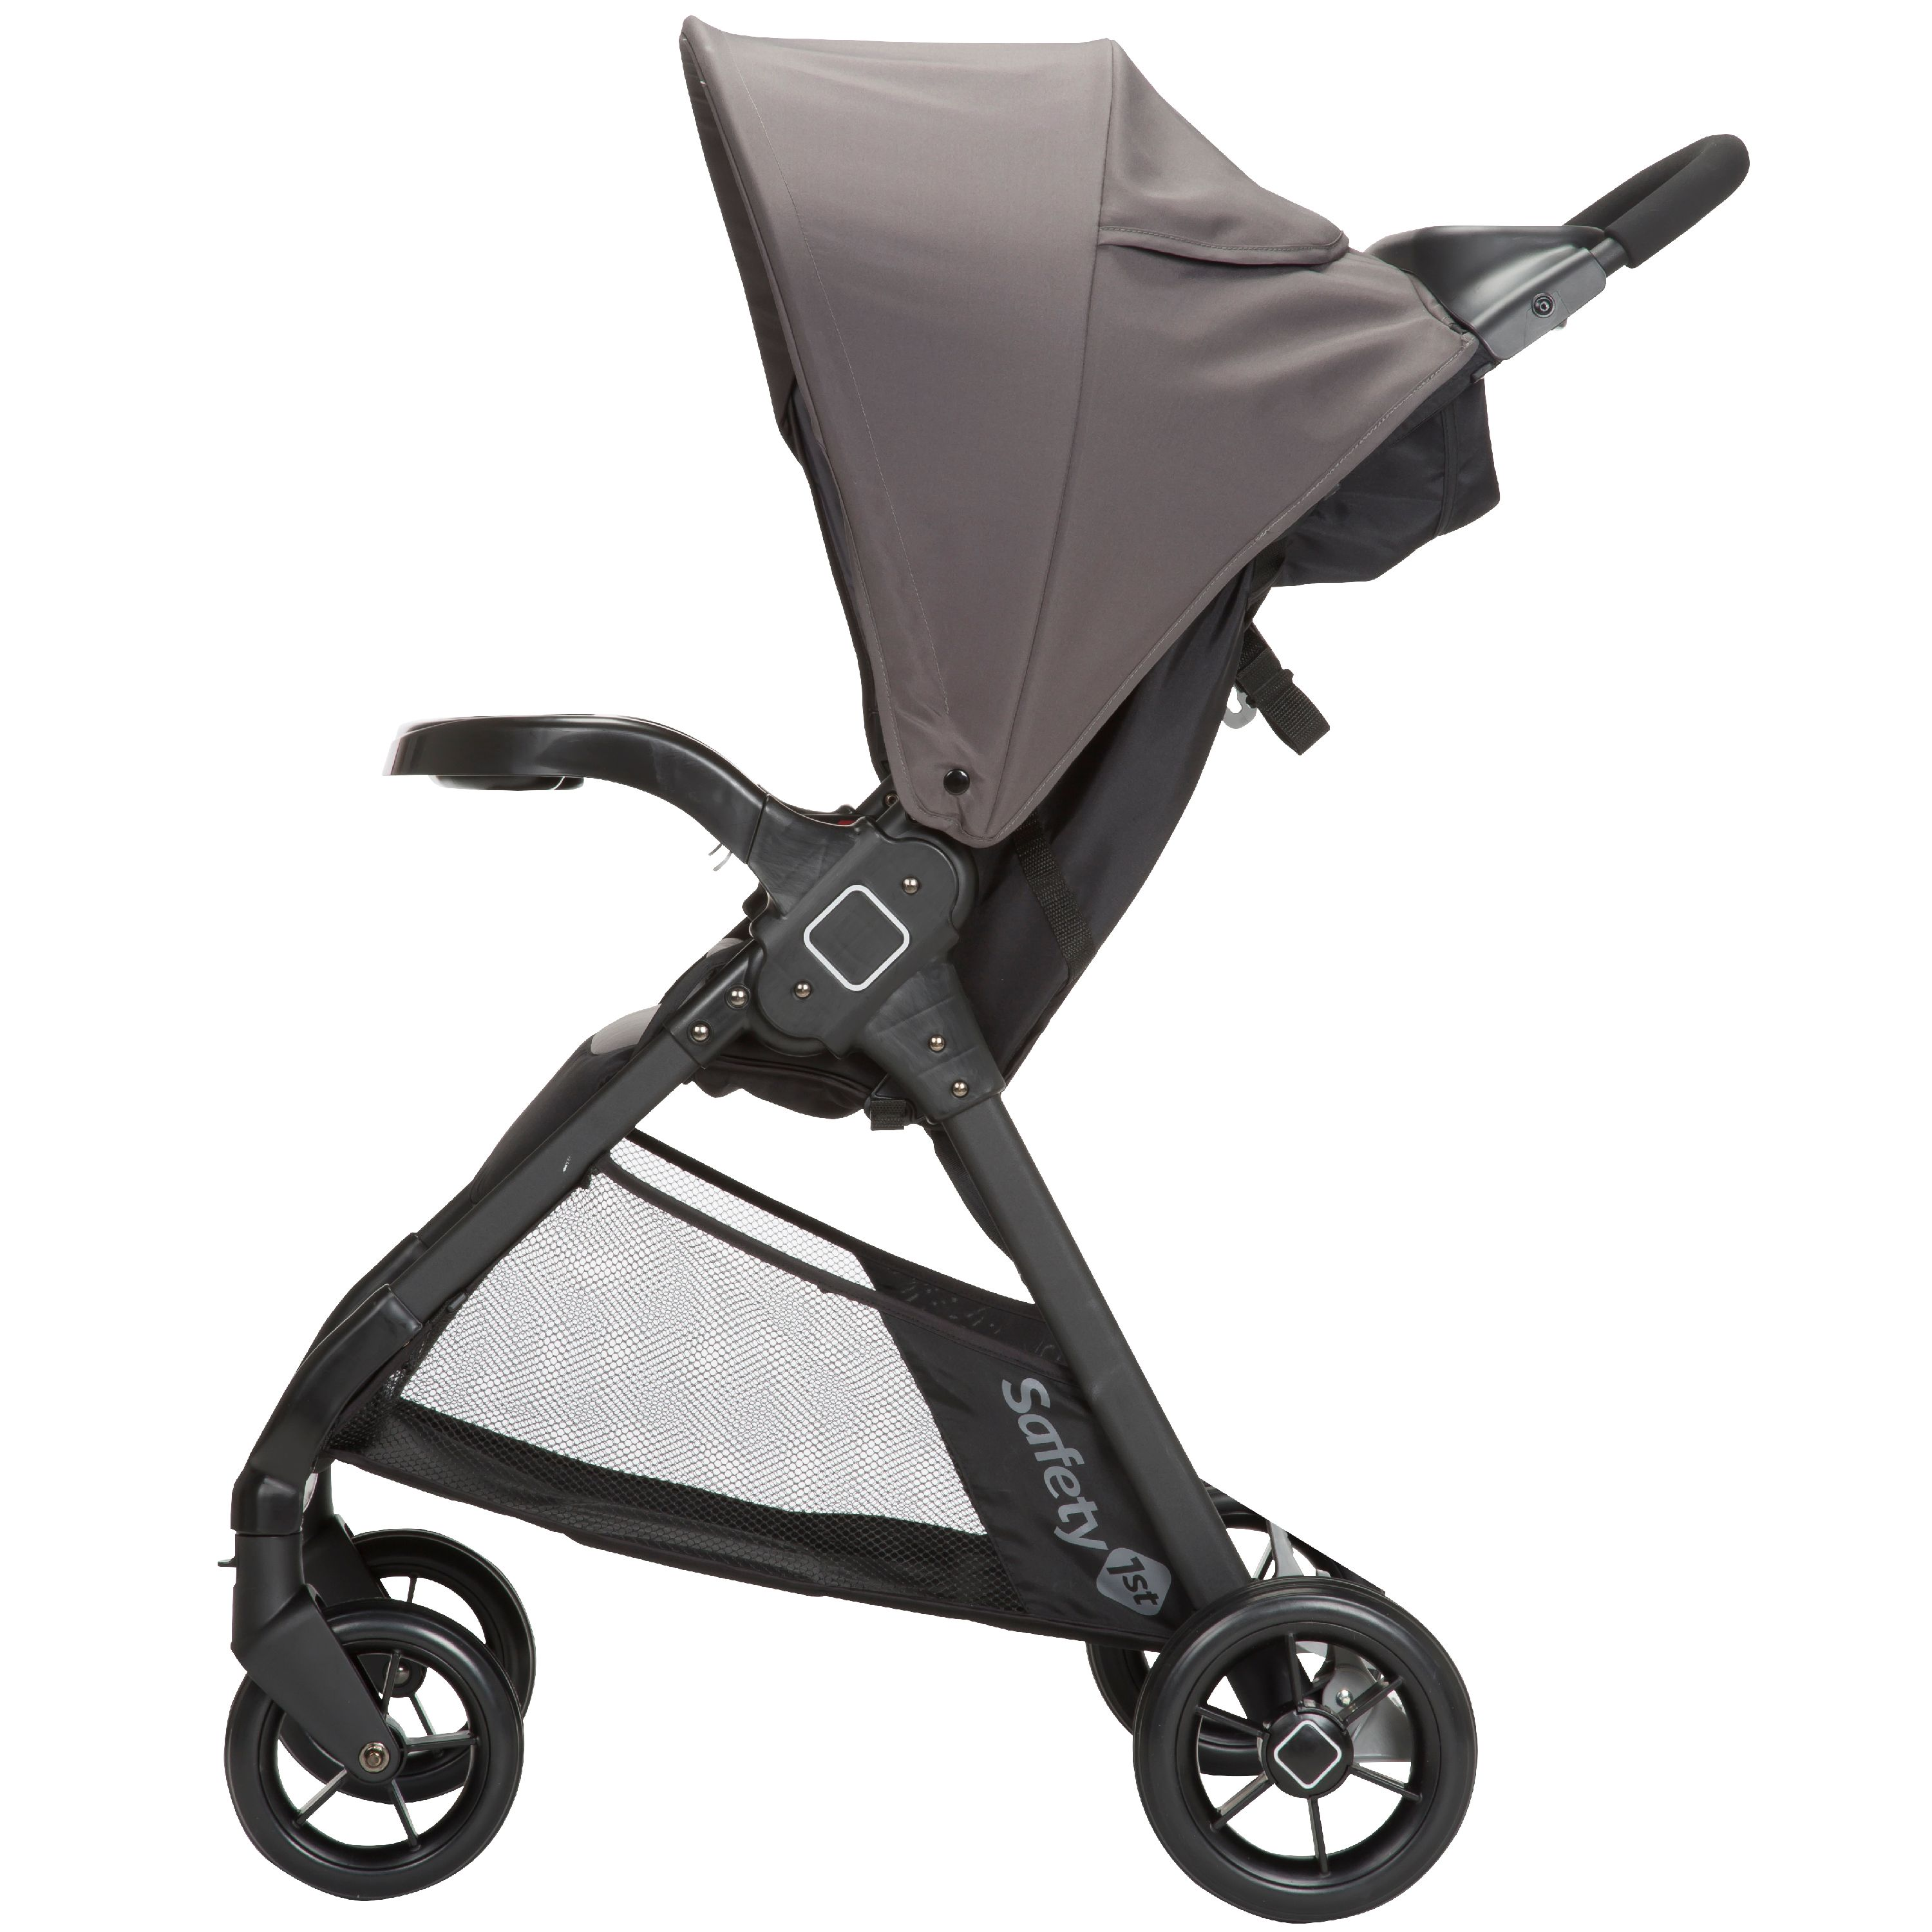 Safety 1st Smooth Ride Travel System W Infant Car Seat Baby Child Stroller NEW